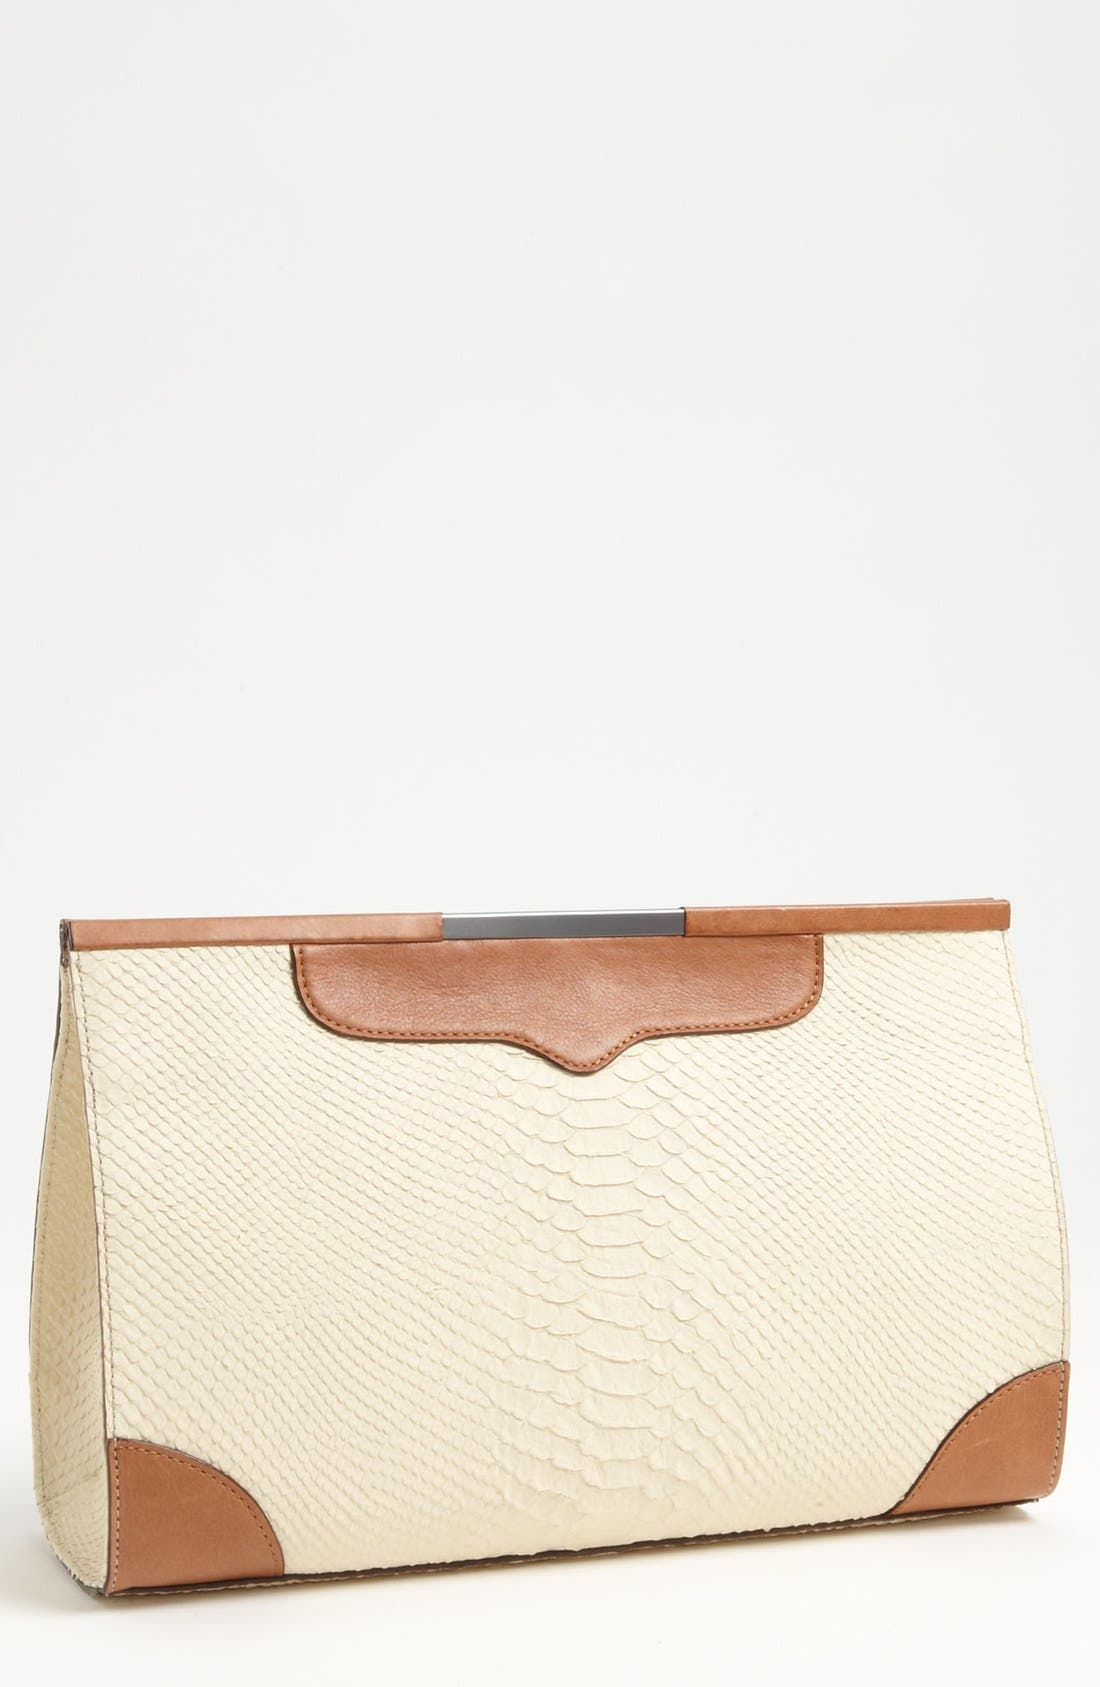 Alternate Image 1 Selected - Rebecca Minkoff 'Honey Bunch' Leather Clutch